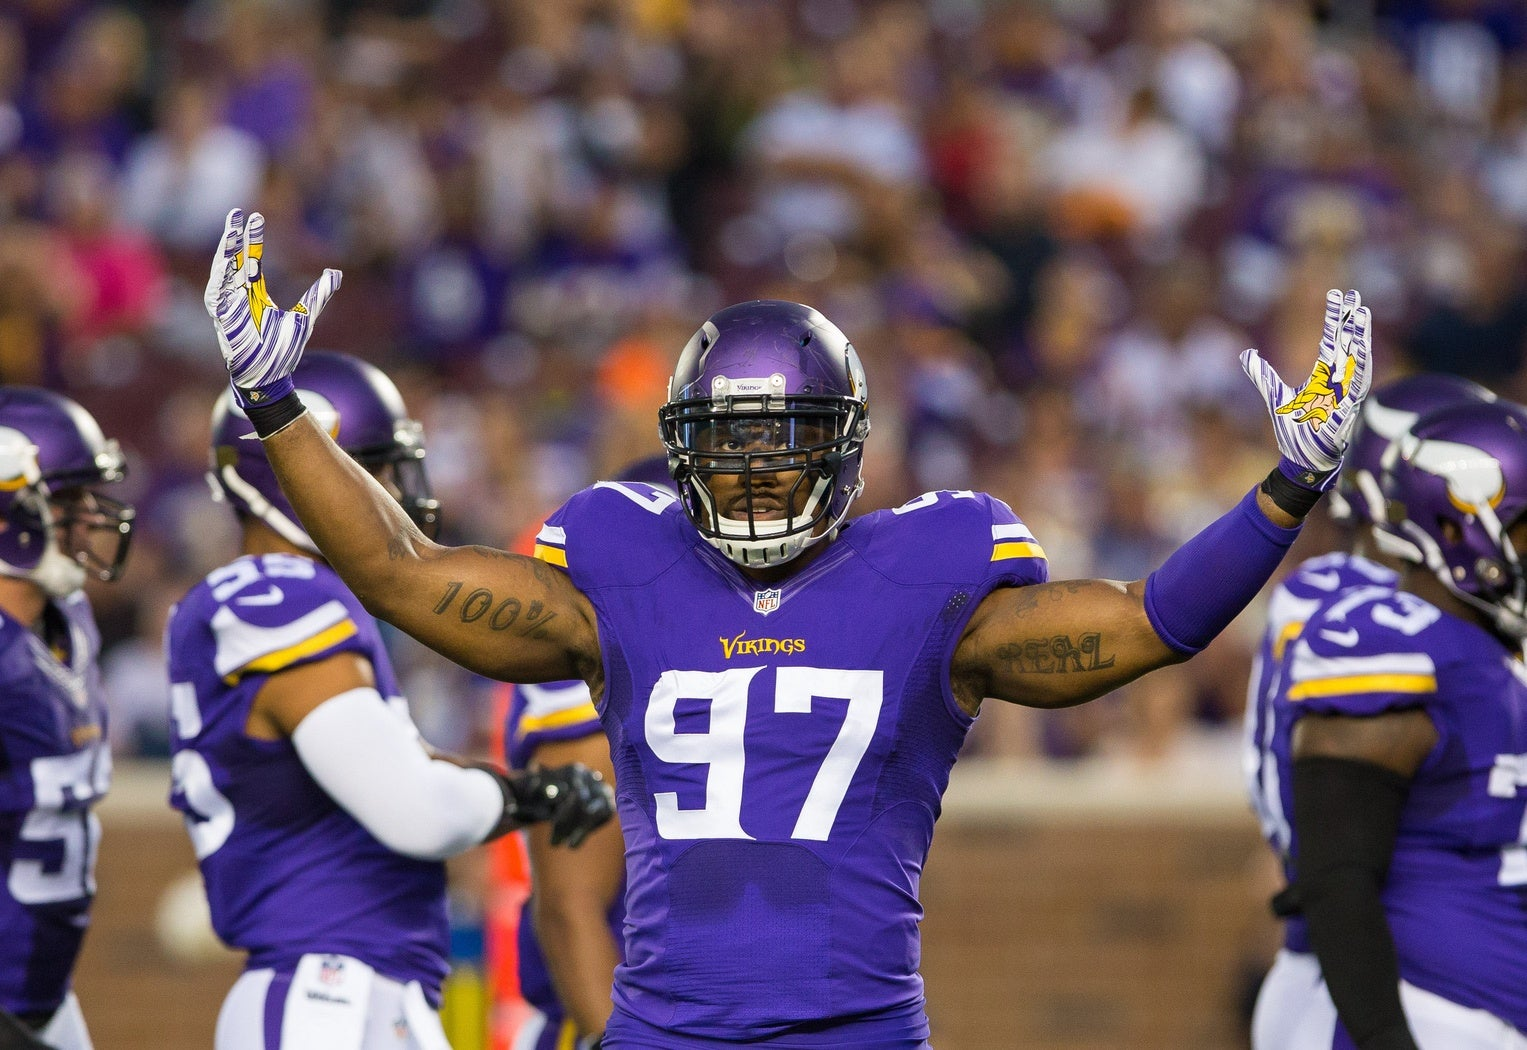 Angry Everson Griffen takes Minnesota Vikings loss personnally